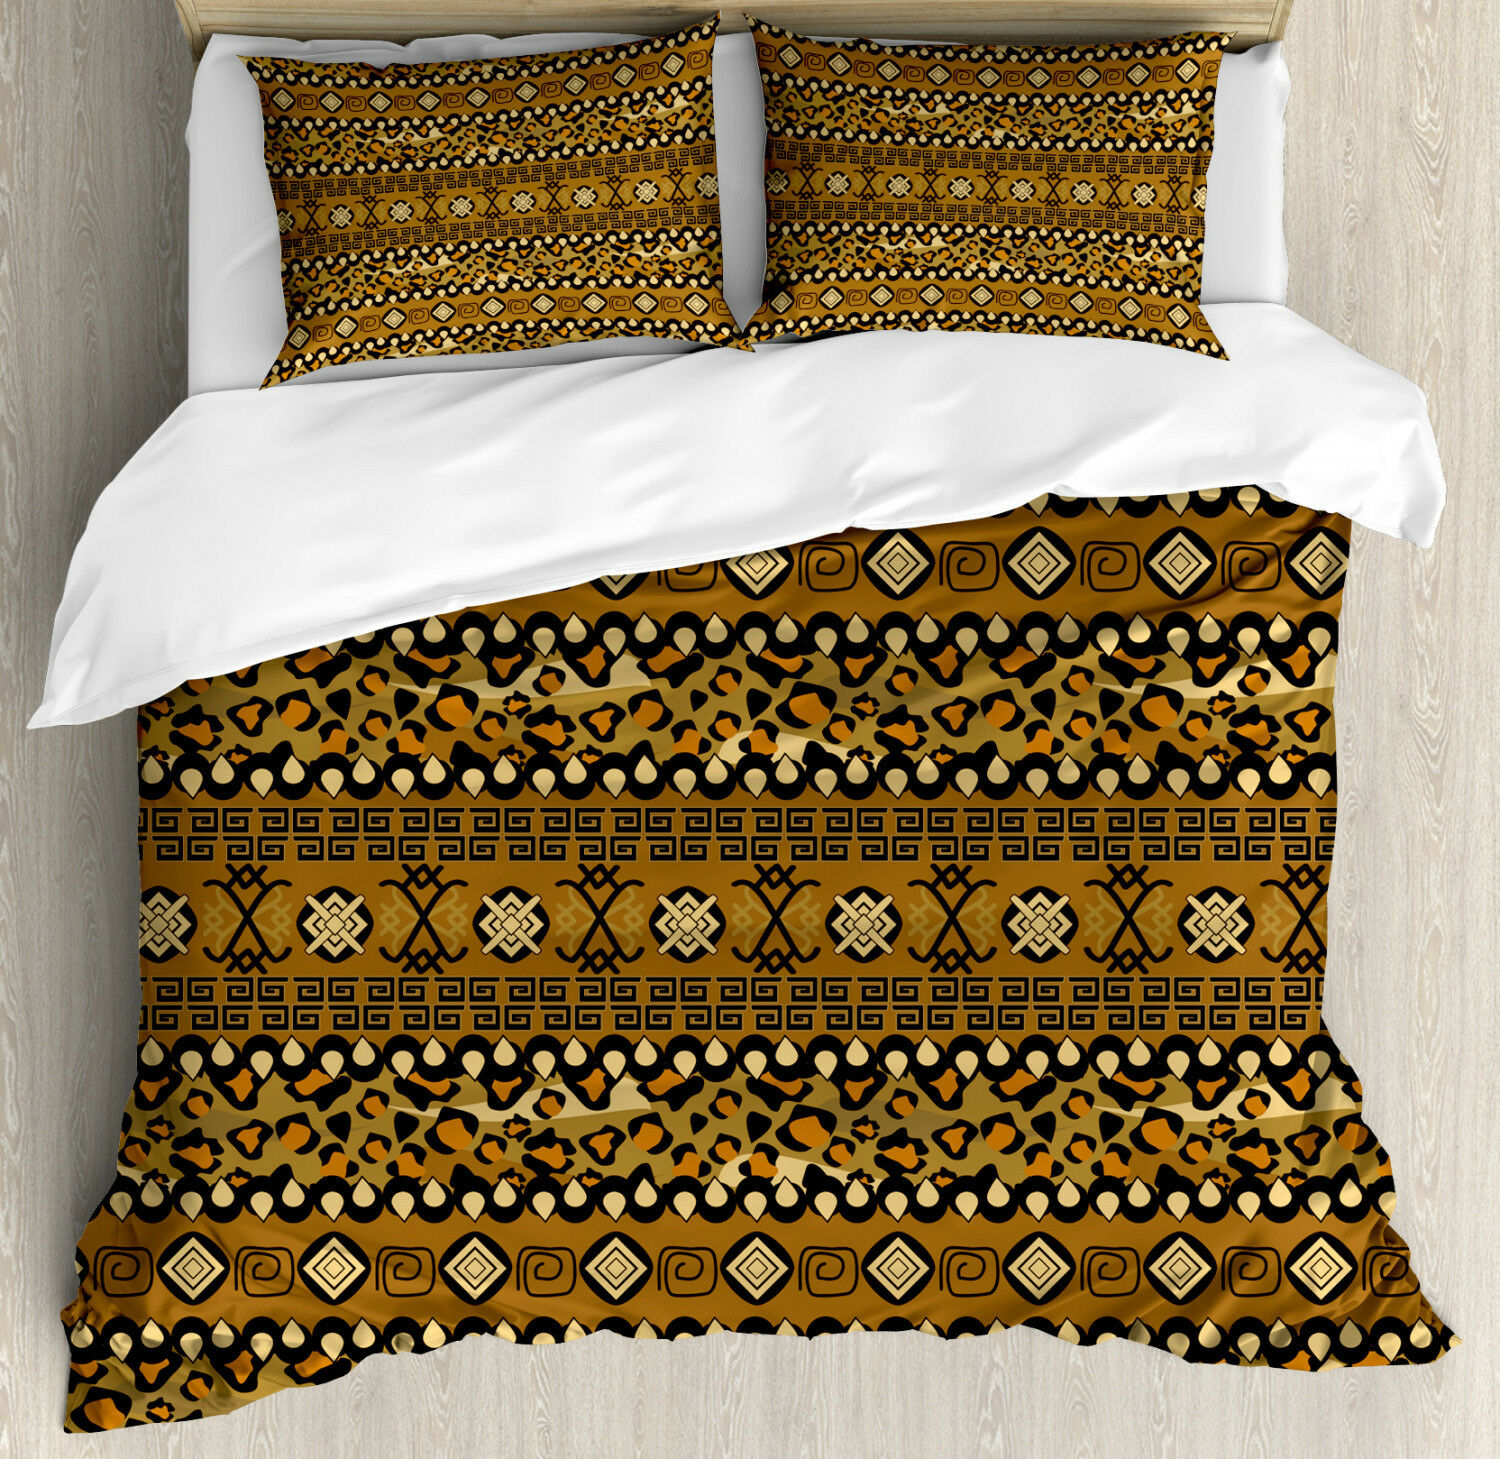 Zambia Duvet Cover Set with Pillow Shams Wild Tropical Animal Print